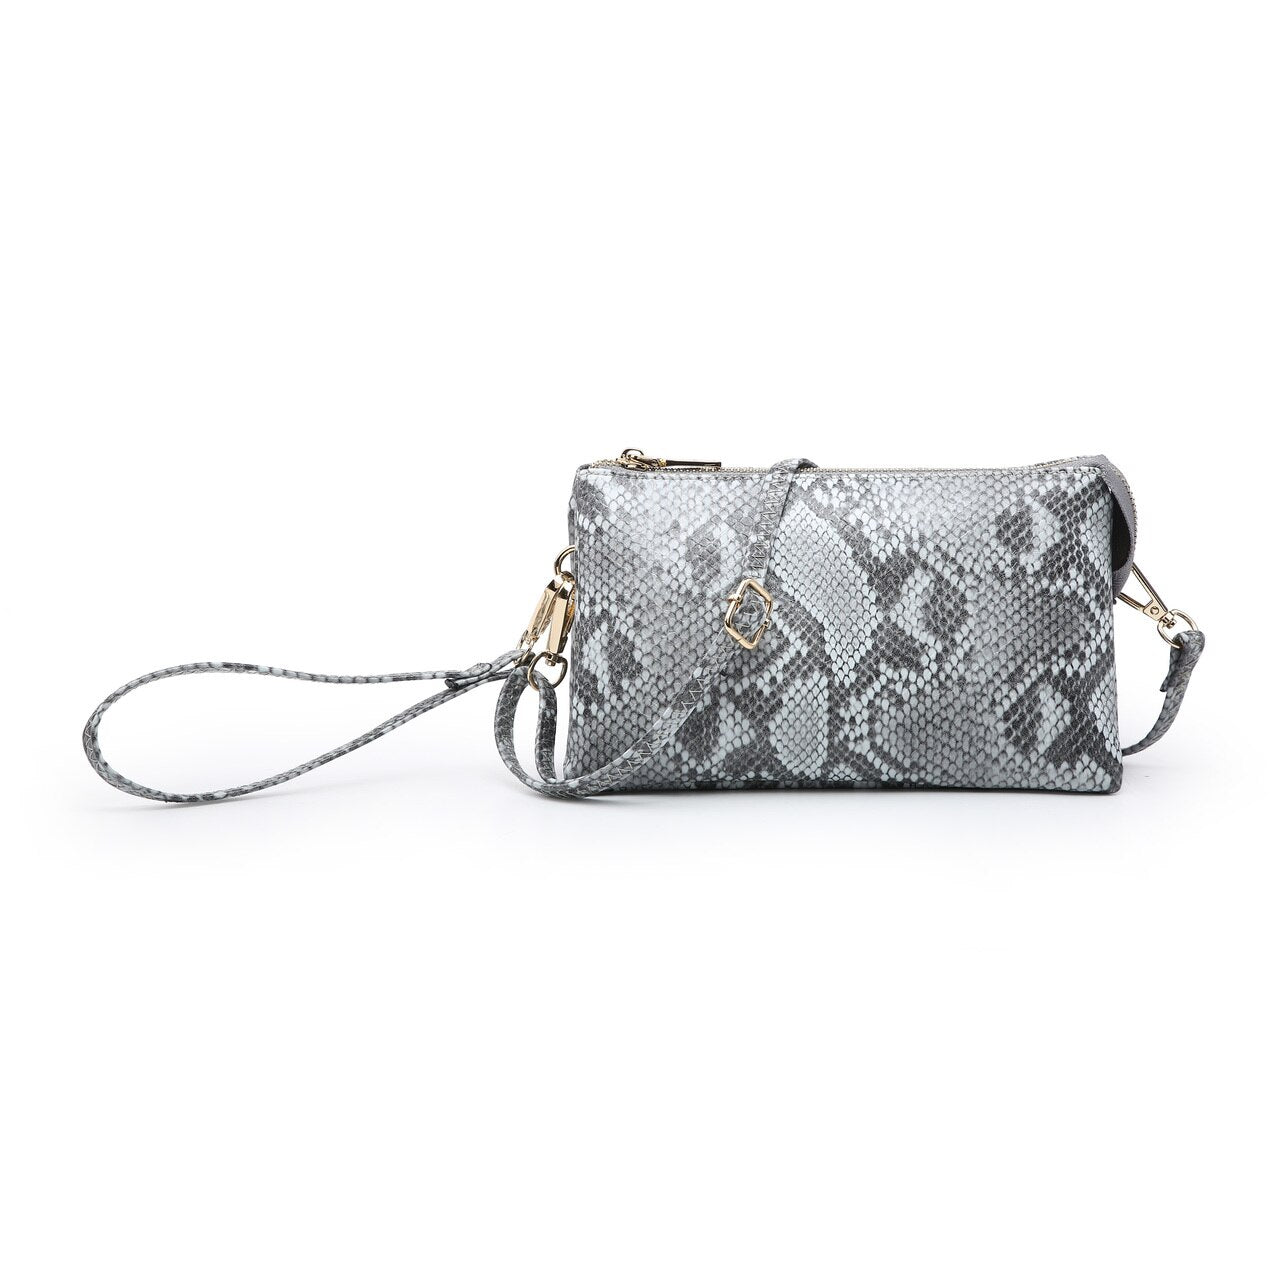 Python Compartment Wristlet/Crossbody in Gray